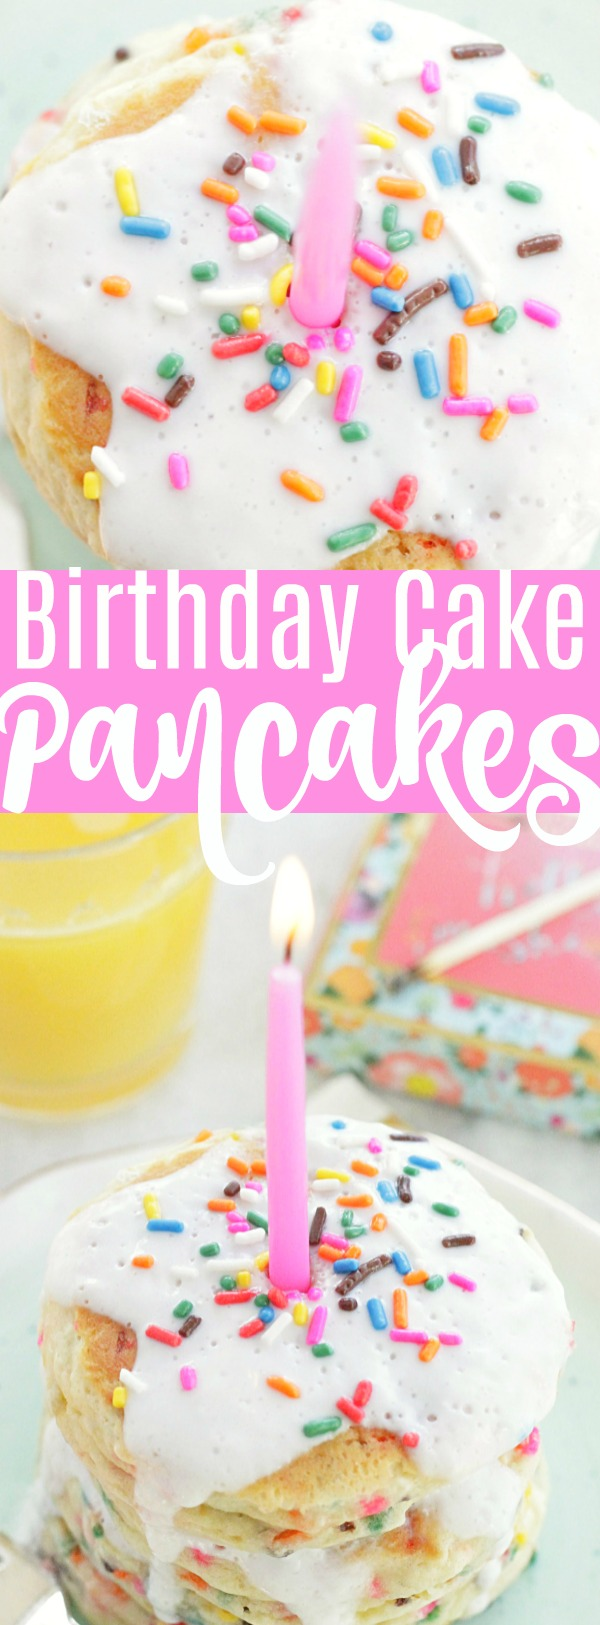 Birthday Cake Pancakes | Foodtastic Mom